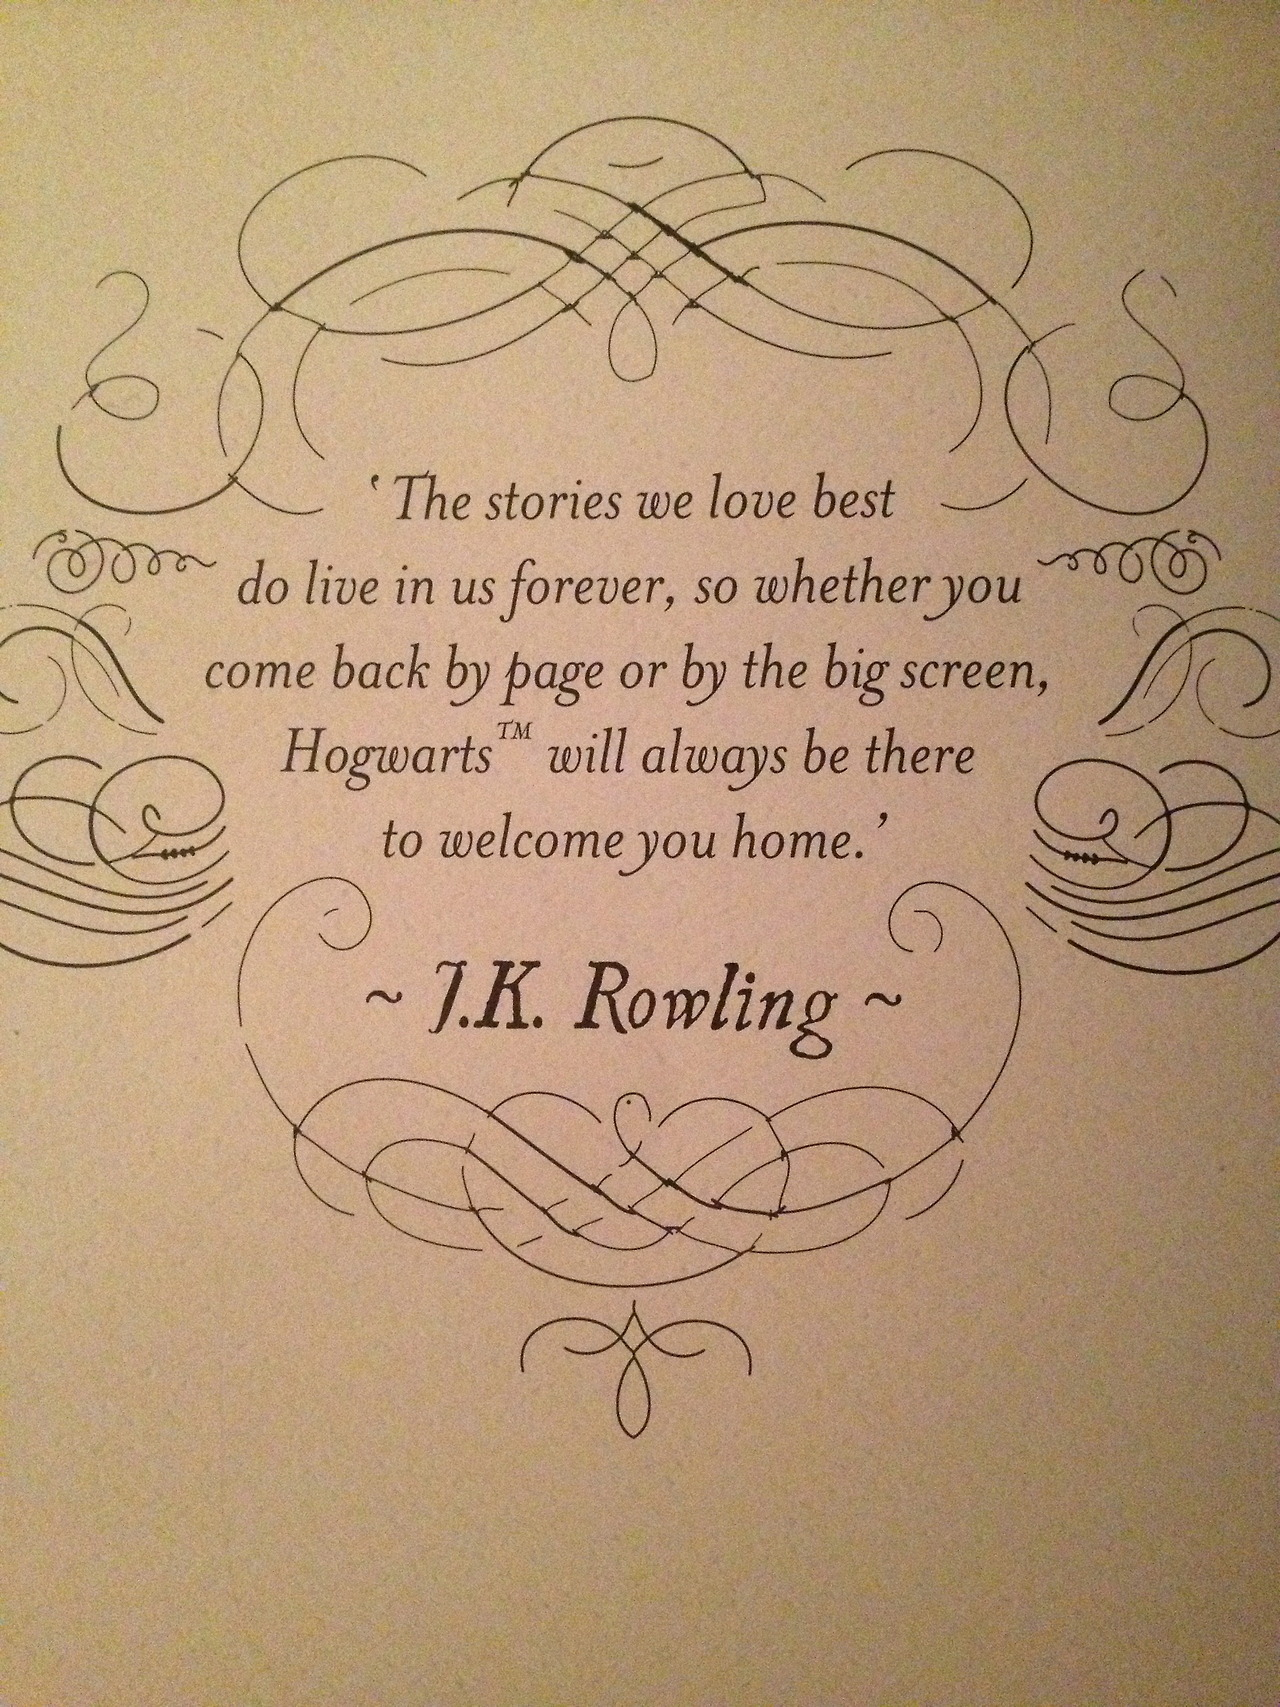 Sirius Black Quotes Wallpaper Love Ron Weasley Harry Potter Life Quotes Hermione Granger